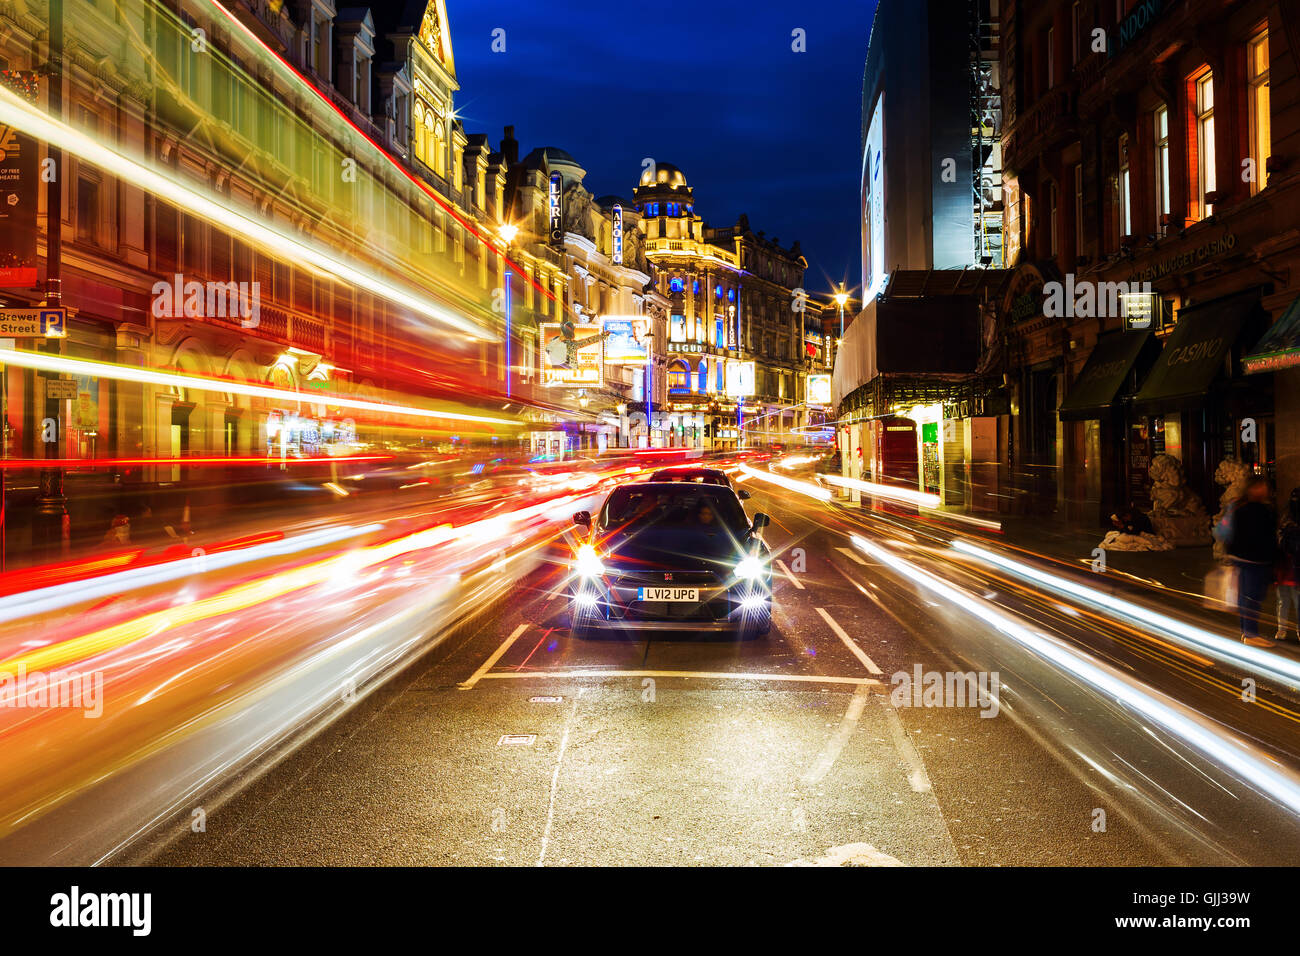 Shaftesbury Avenue in London, UK, at night - Stock Image